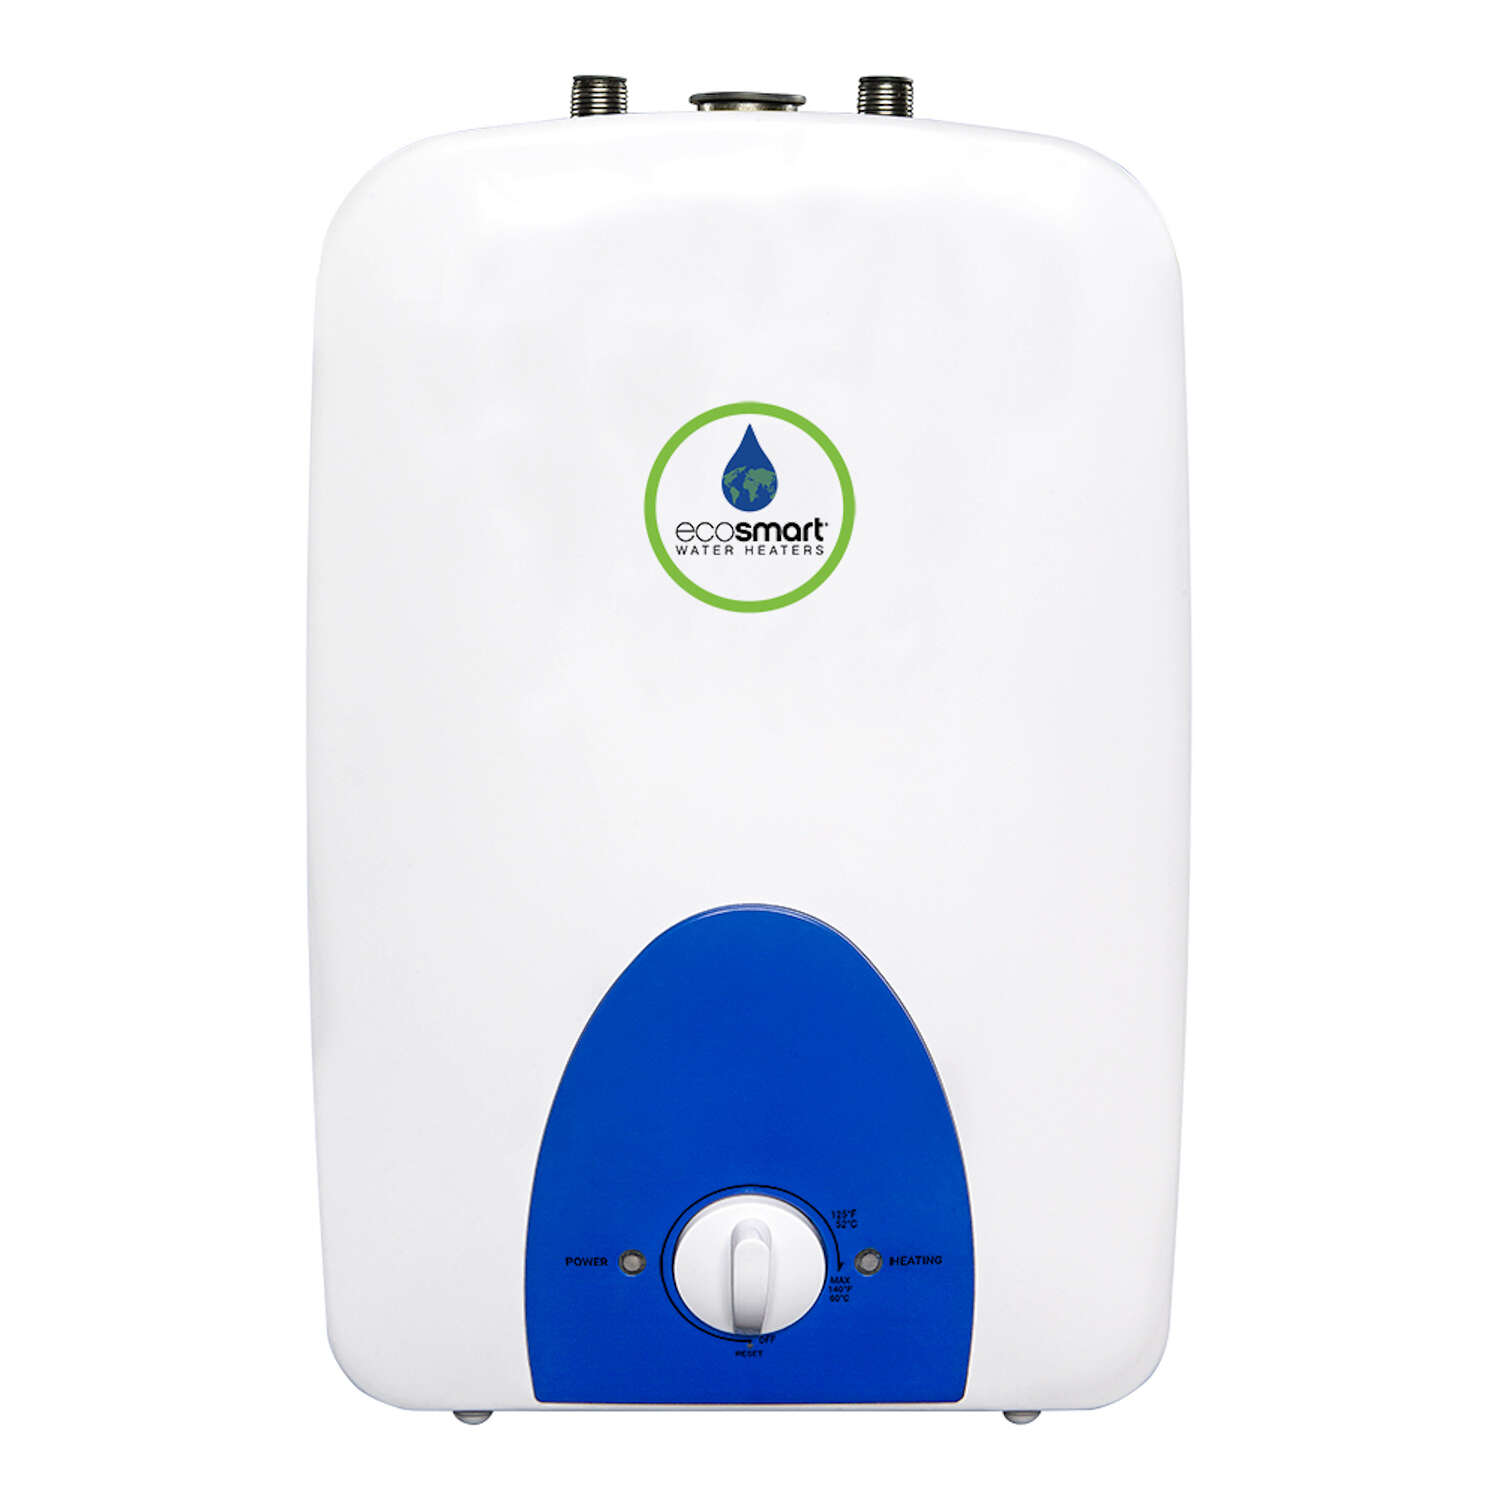 EcoSmart 2.5 gal. Tankless Electric Water Heater